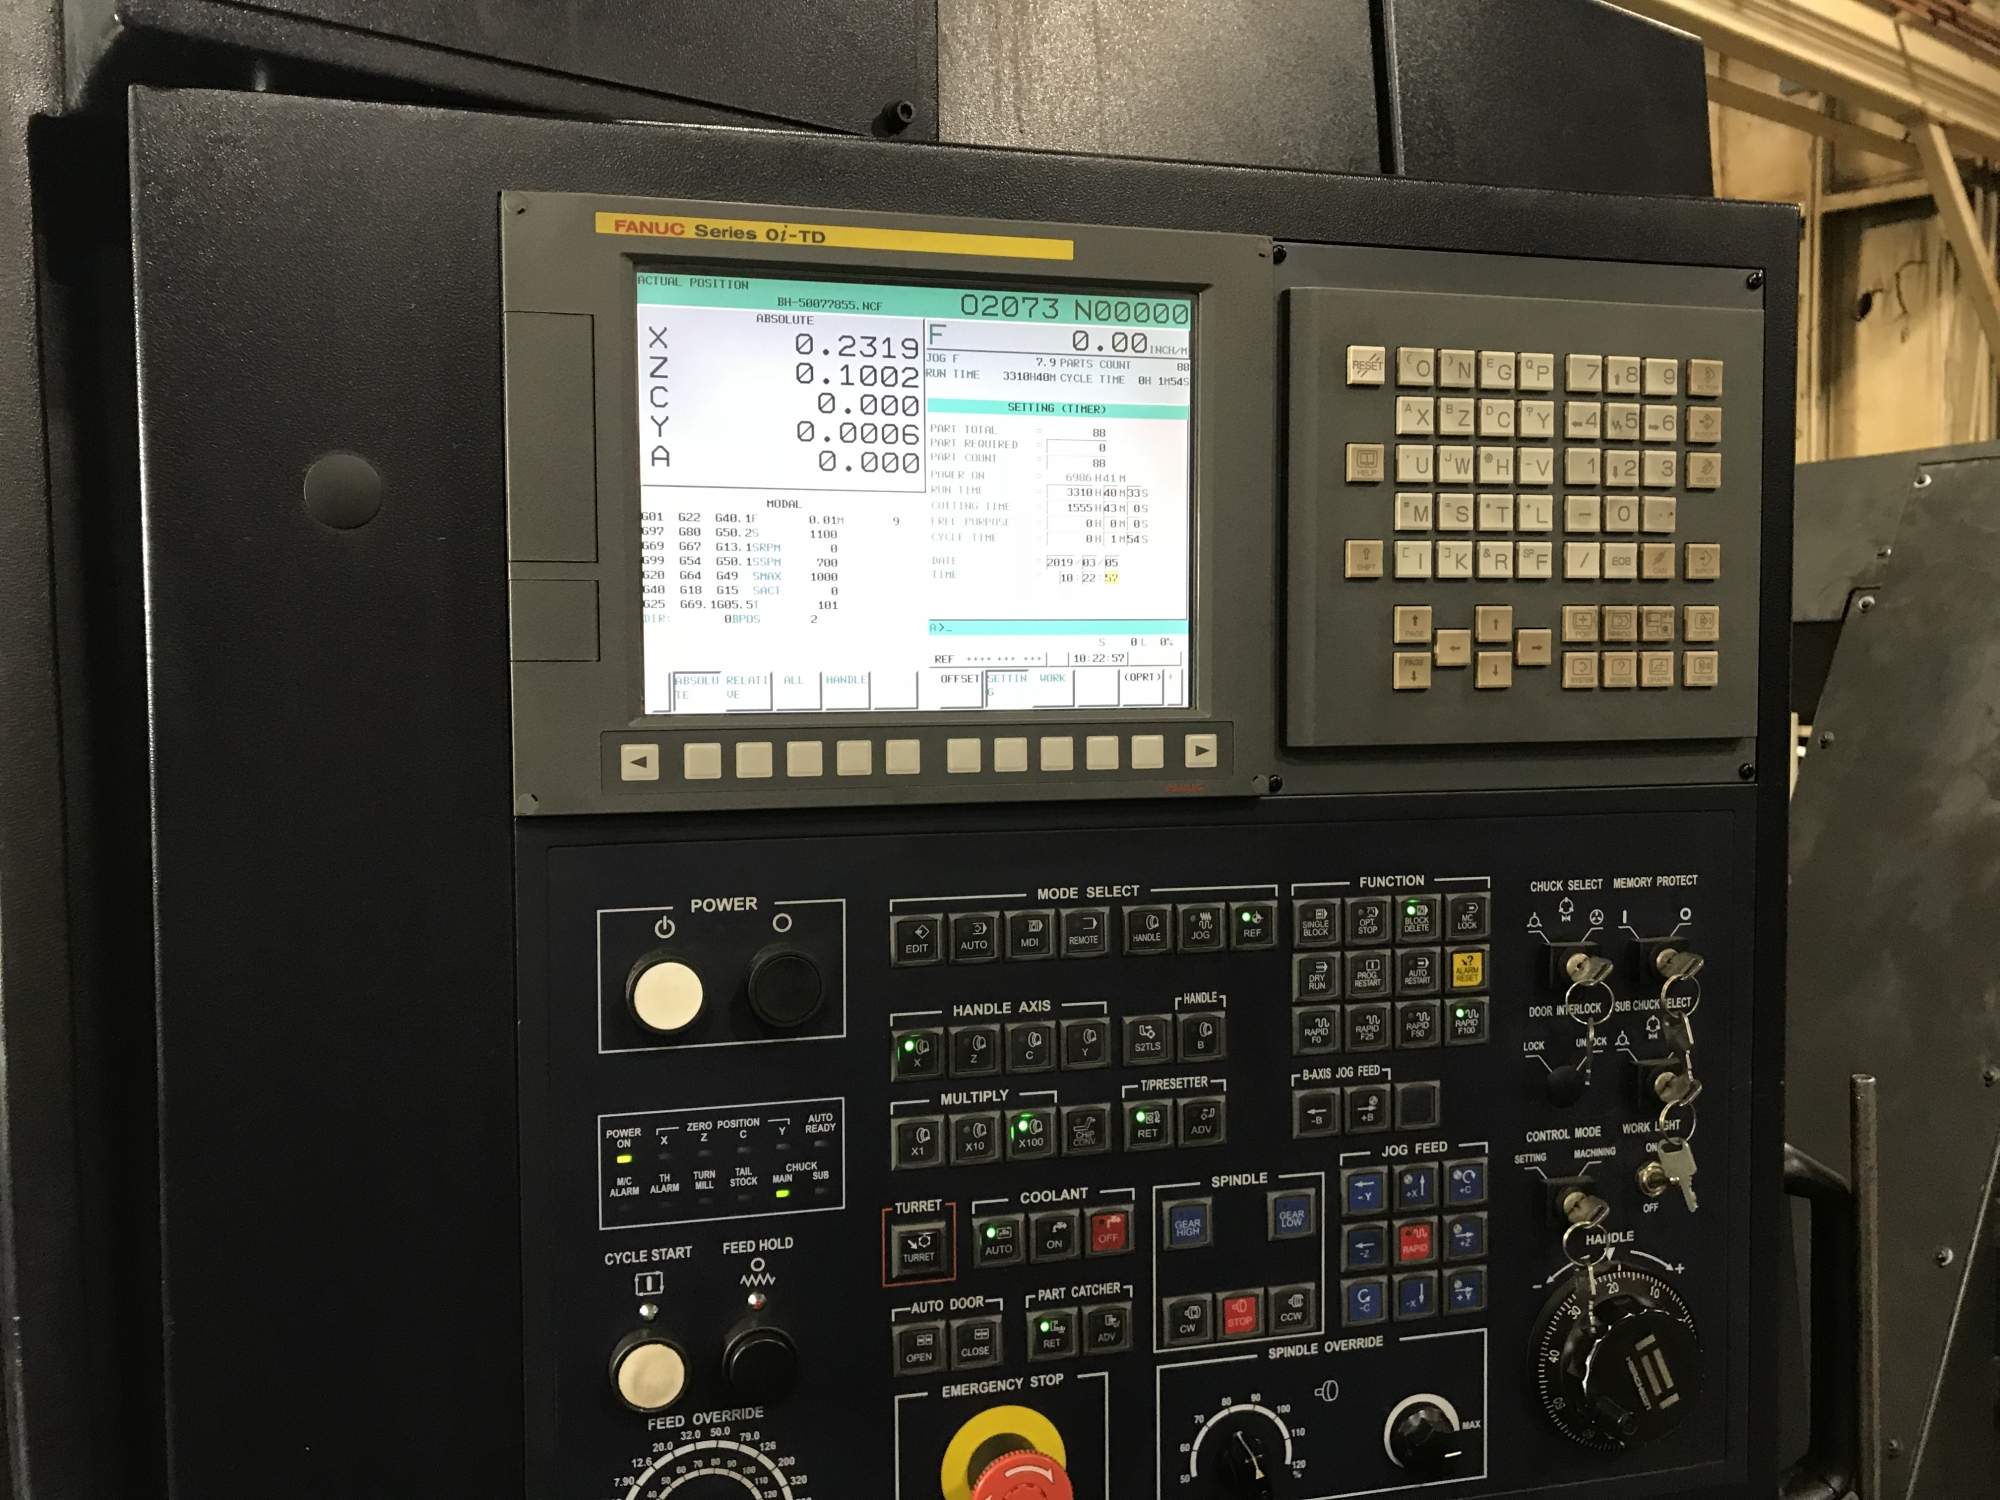 2015 HWACHEON Hi-Tech 350B YSMC - CNC Horizontal Lathe